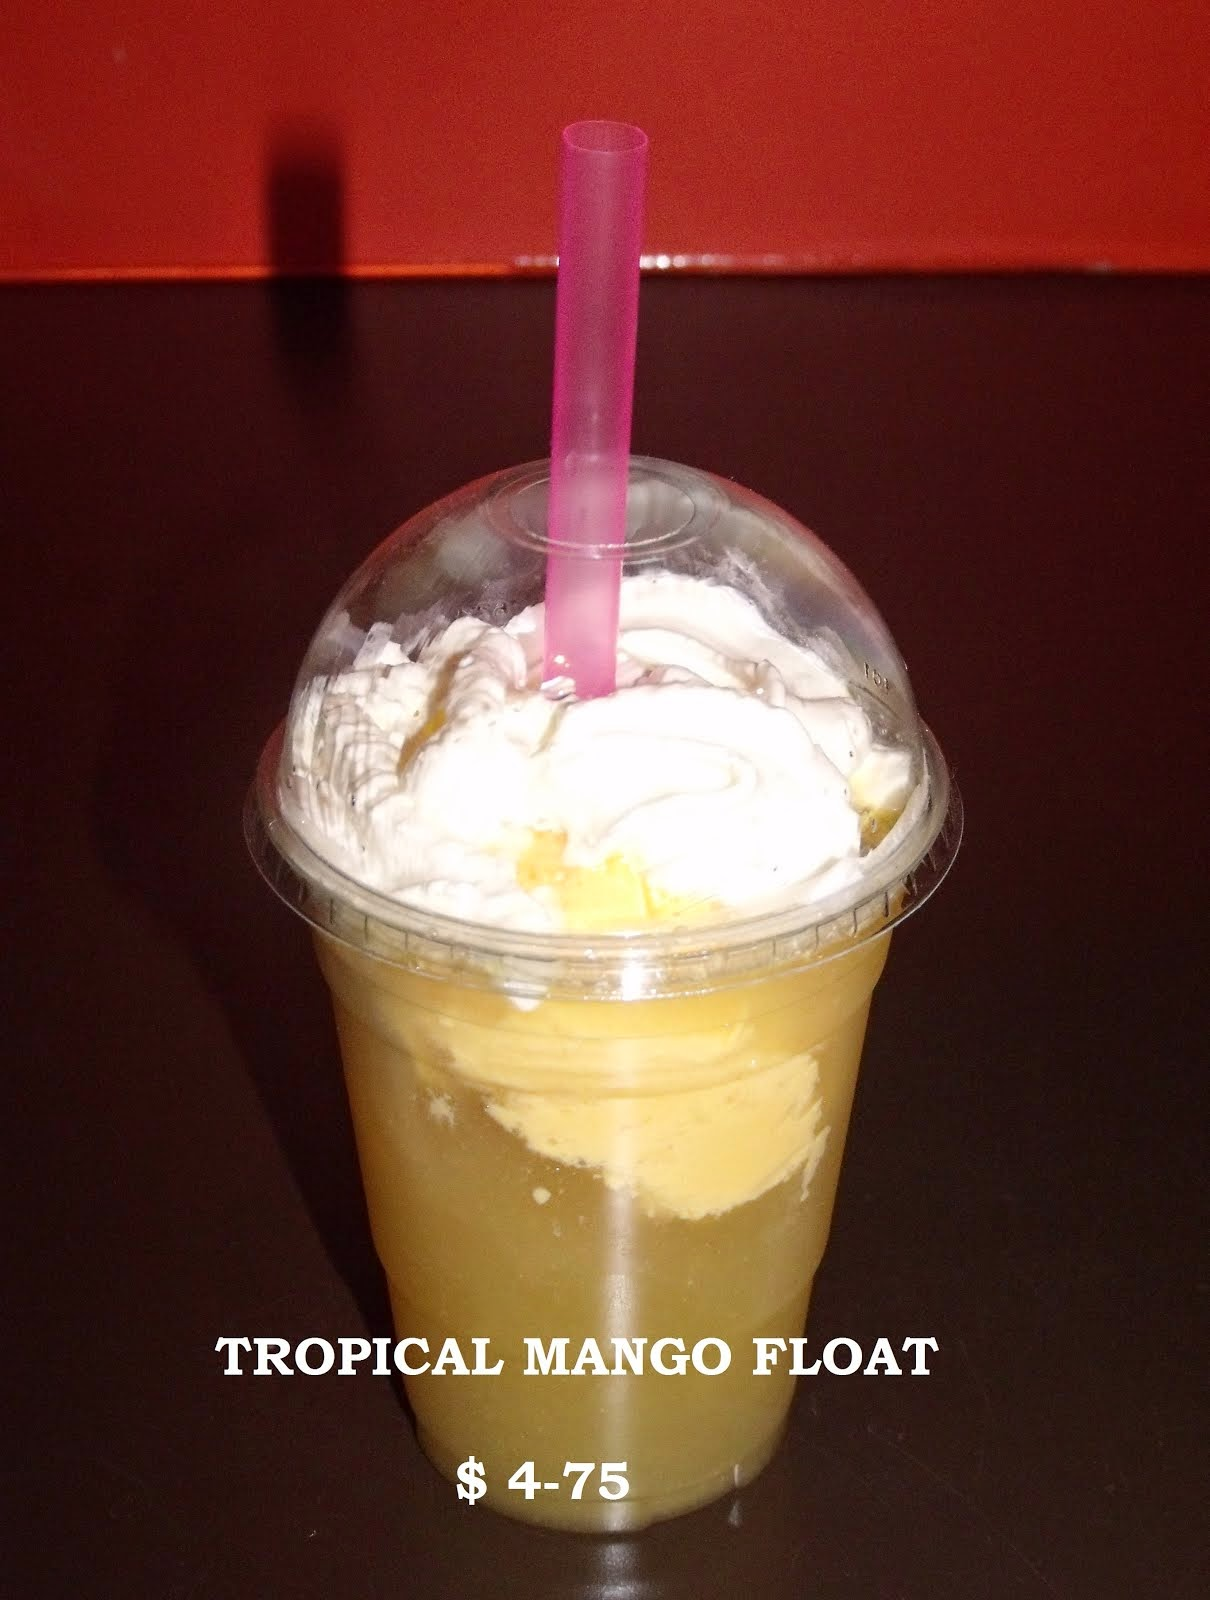 TROPICAL MANGO FLOAT